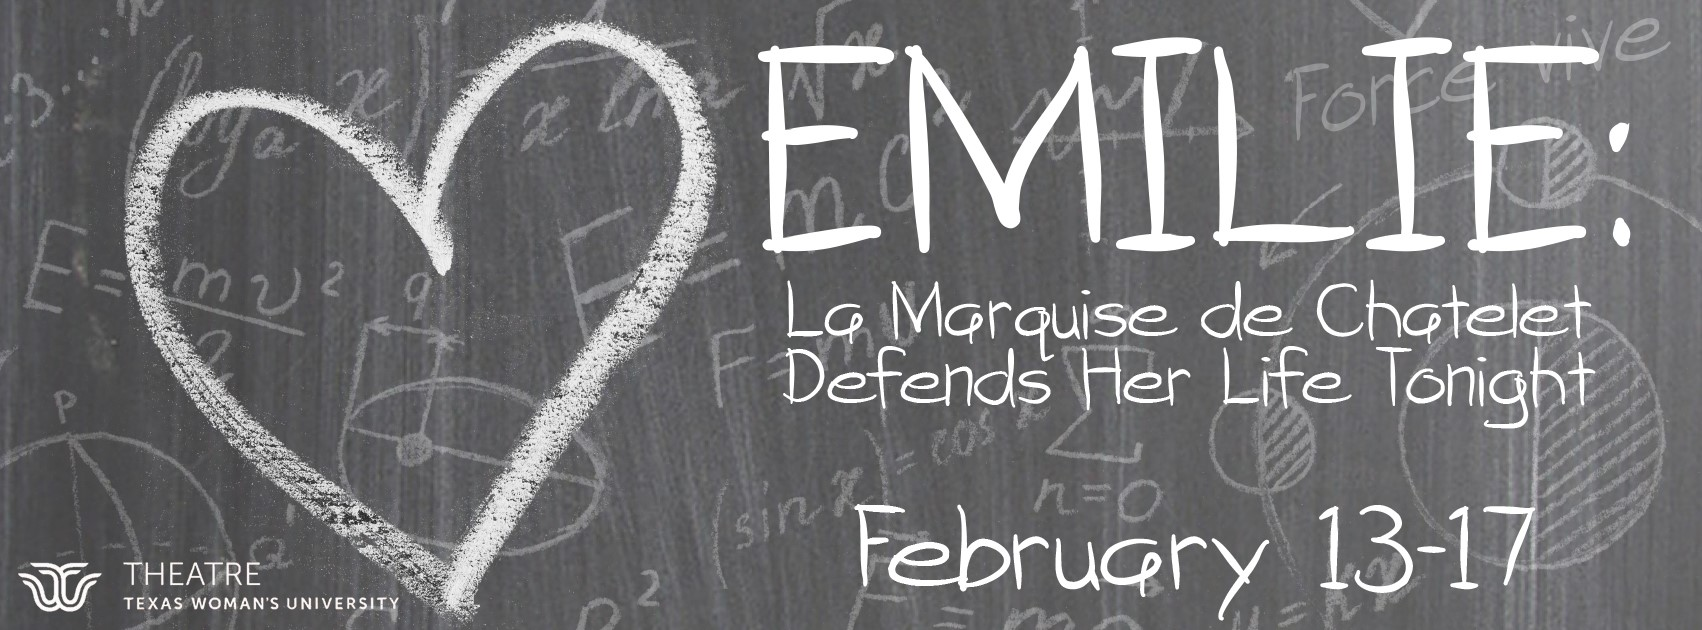 'Emilie: La Marquise Du Châtelet Defends Her Life Tonight' written on a chalkboard with production dates Feb. 13-17